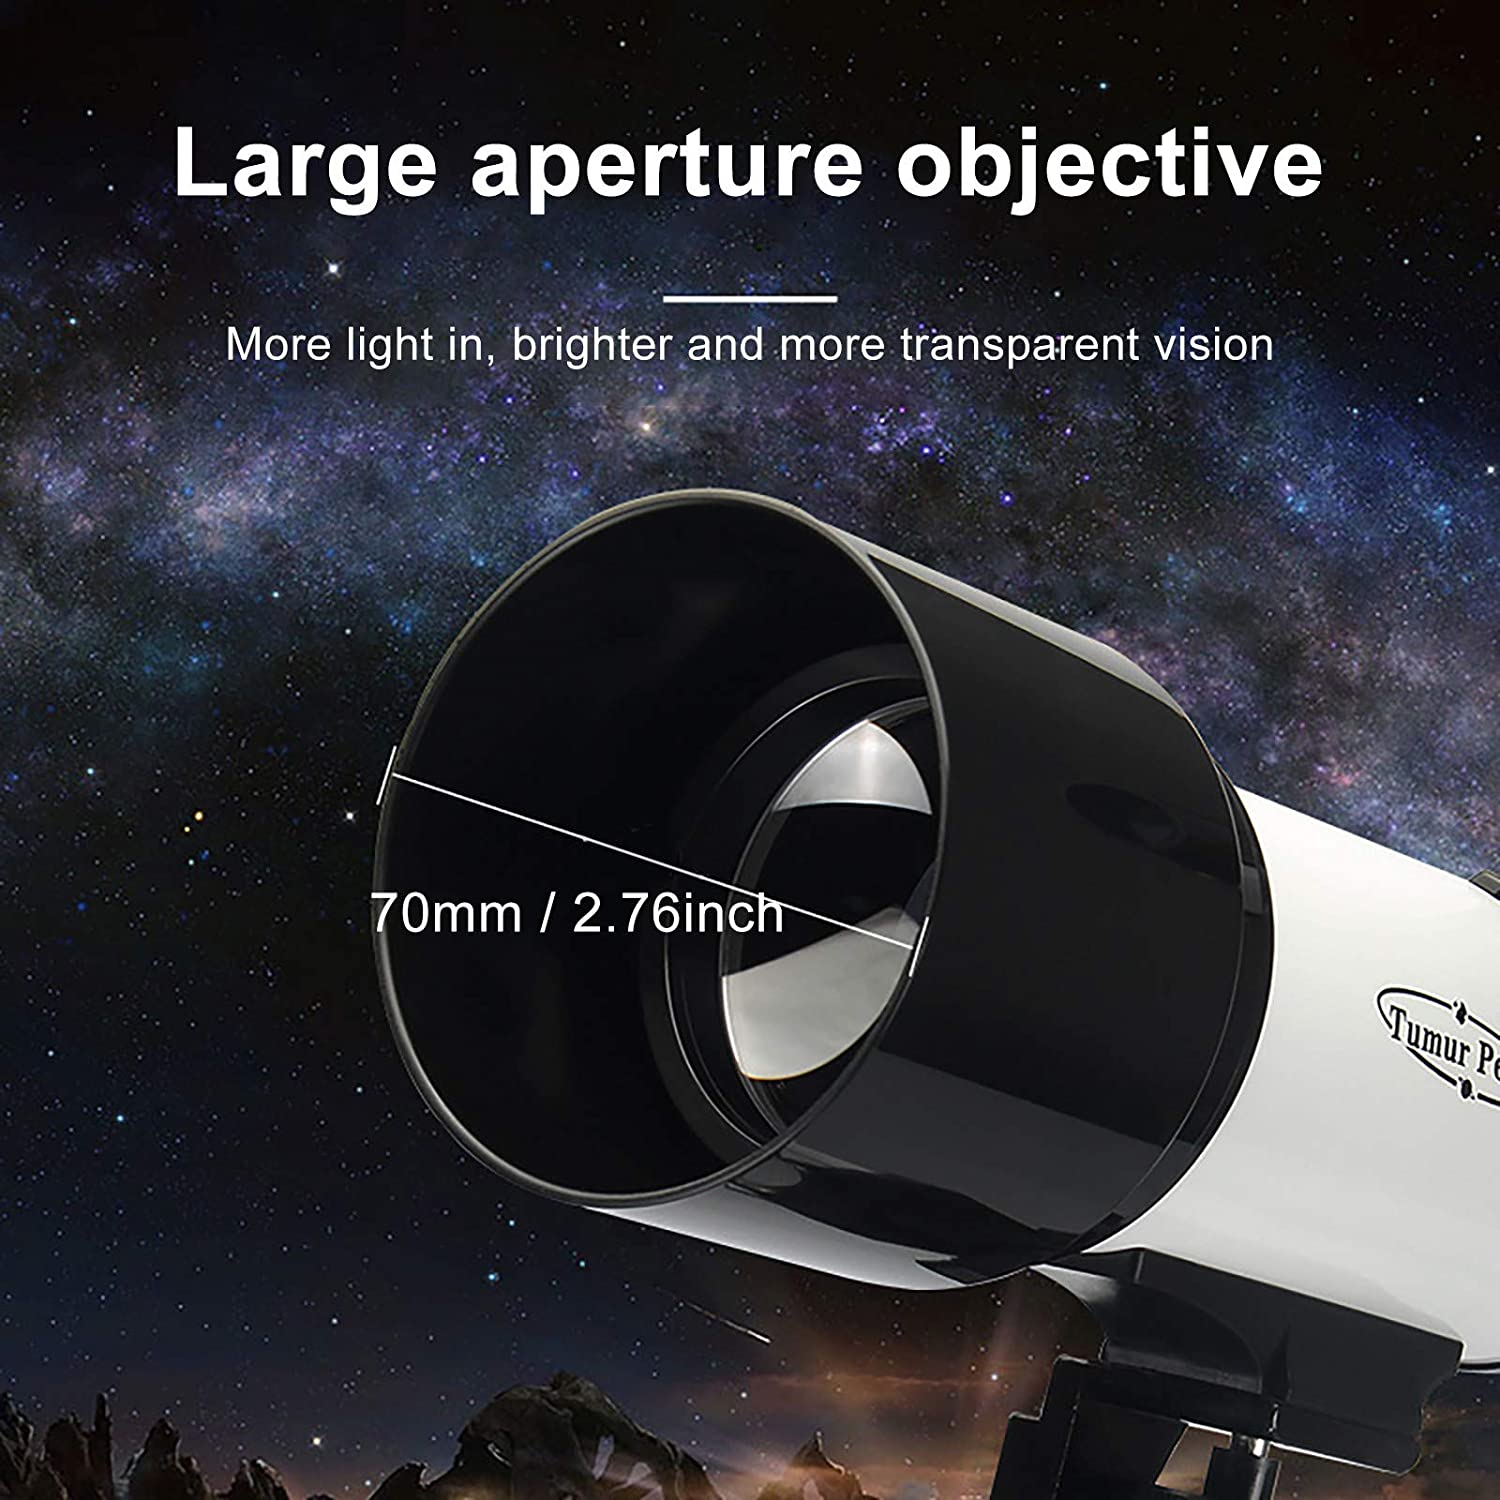 70mm Aperture 400mm Focal Professional Stargazing High Power HD Night Vision Astronomy Telescope With Finder Scope /& Tripod YJYdada Astronomical Telescope For Beginners Kids /& Adults